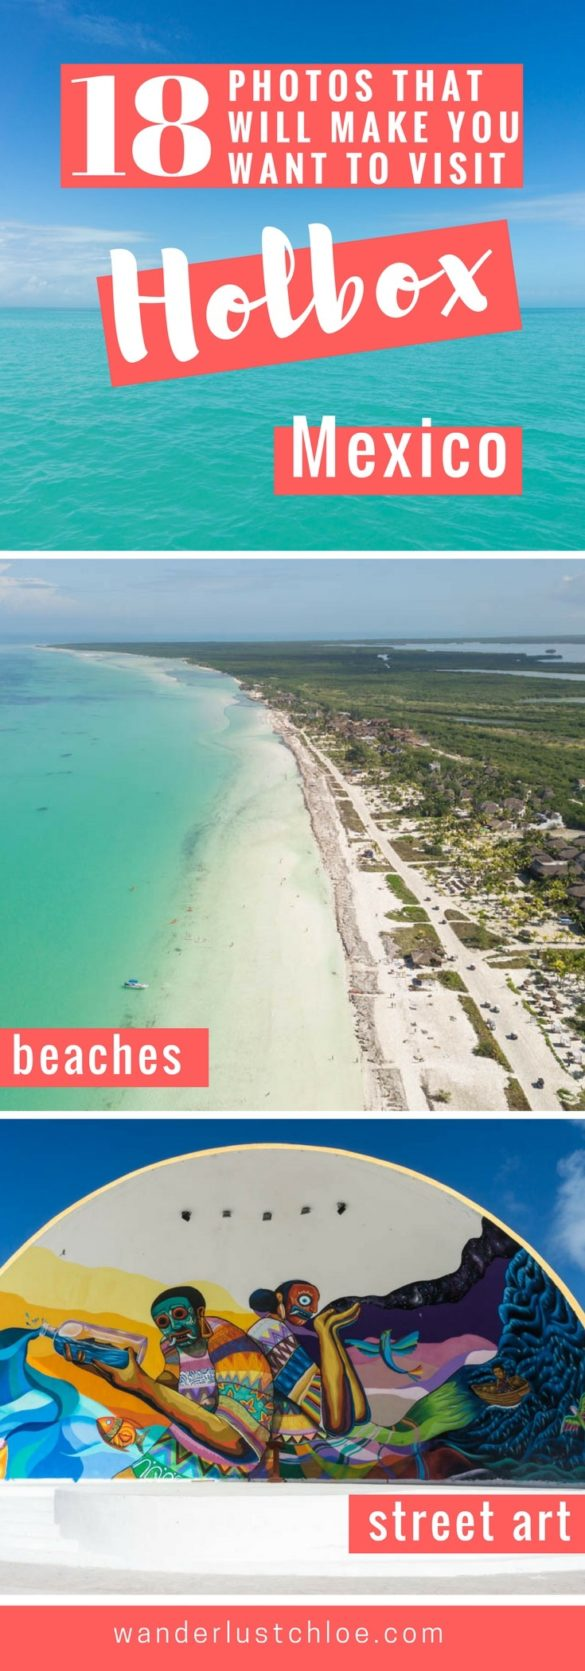 18 Photos That Will Make You Want To Visit Isla Holbox, Mexico